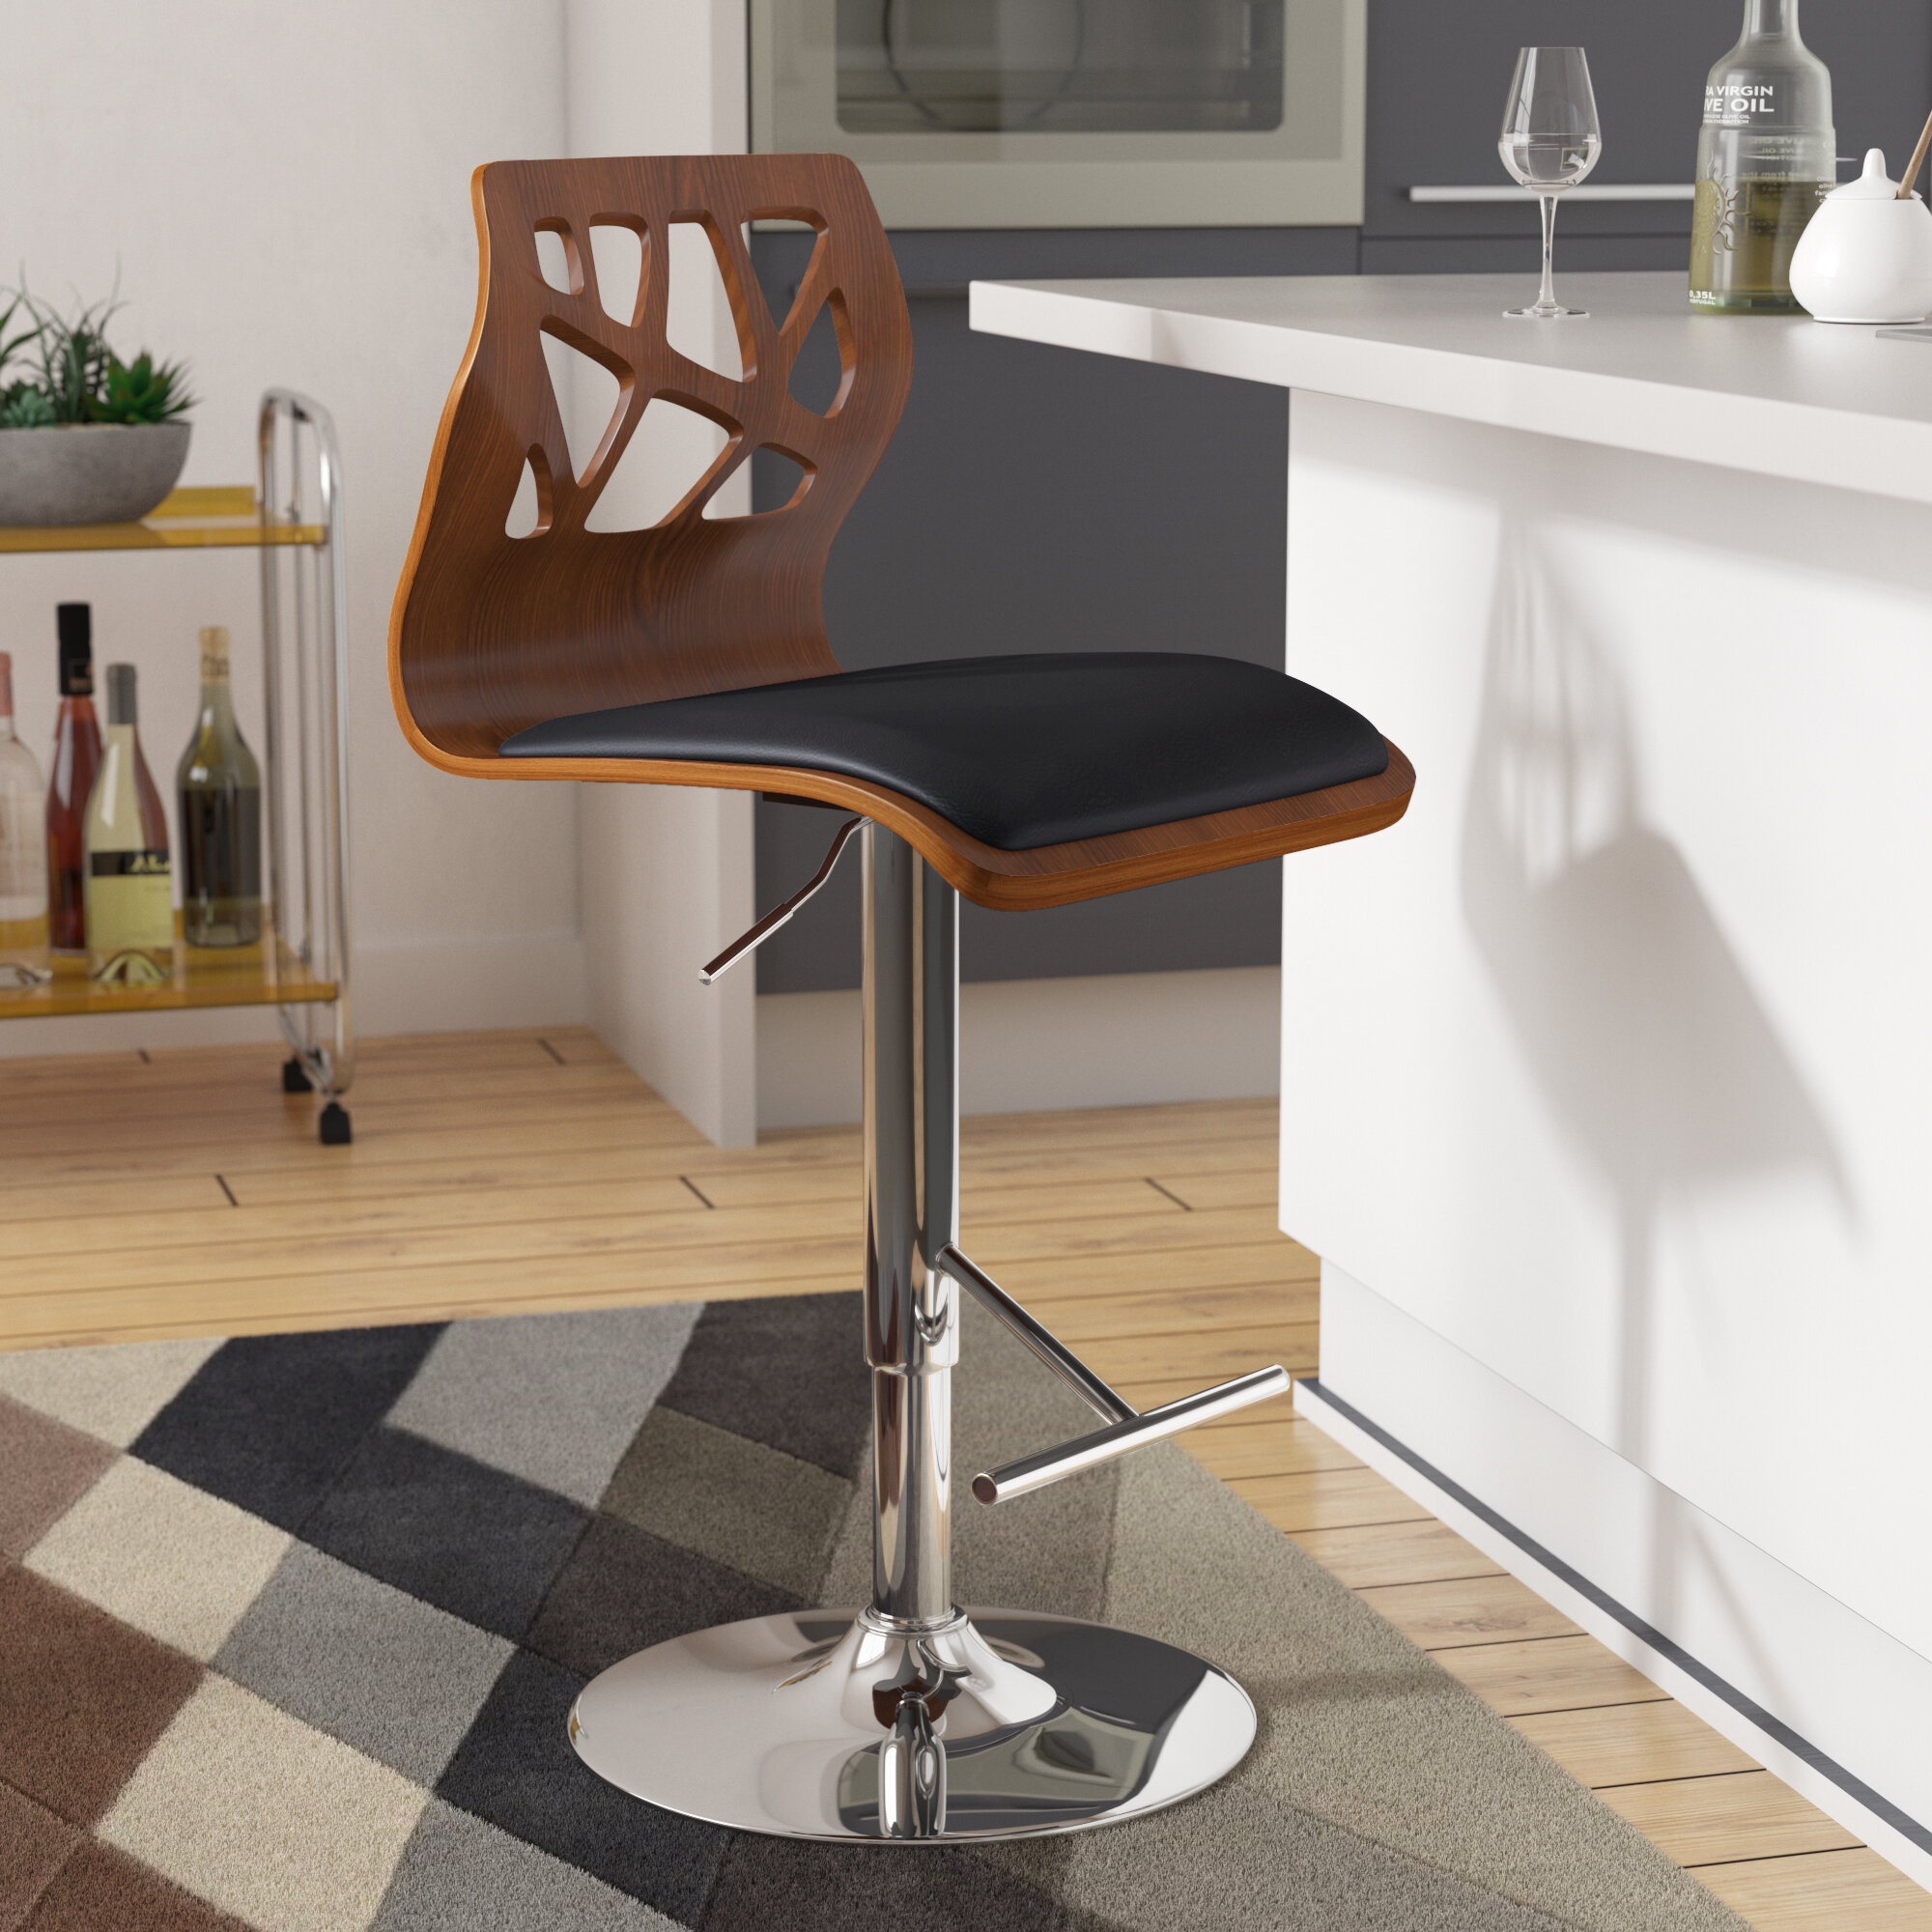 100% True Europe Retro Style Height Adjustable Bar Chair With Footrest Wood Backrest Swivel Bar Stool Counter Coffee Pub Chair Barstool Packing Of Nominated Brand Bar Furniture Bar Chairs